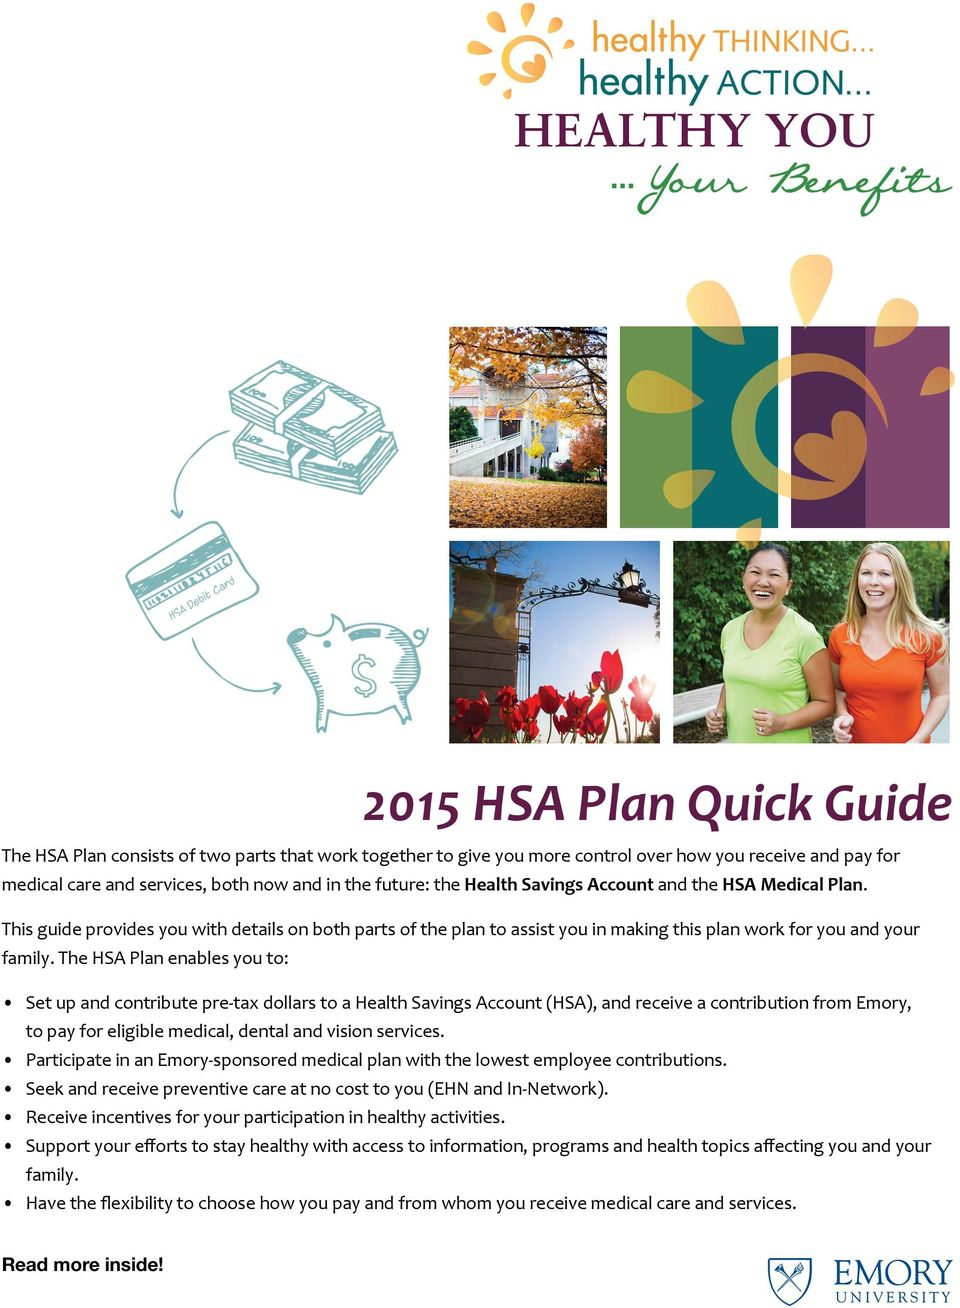 The HSA Plan enables you to: Set up and contribute pre-tax dollars to a Health Savings Account (HSA), and receive a contribution from Emory, to pay for eligible medical, dental and vision services.